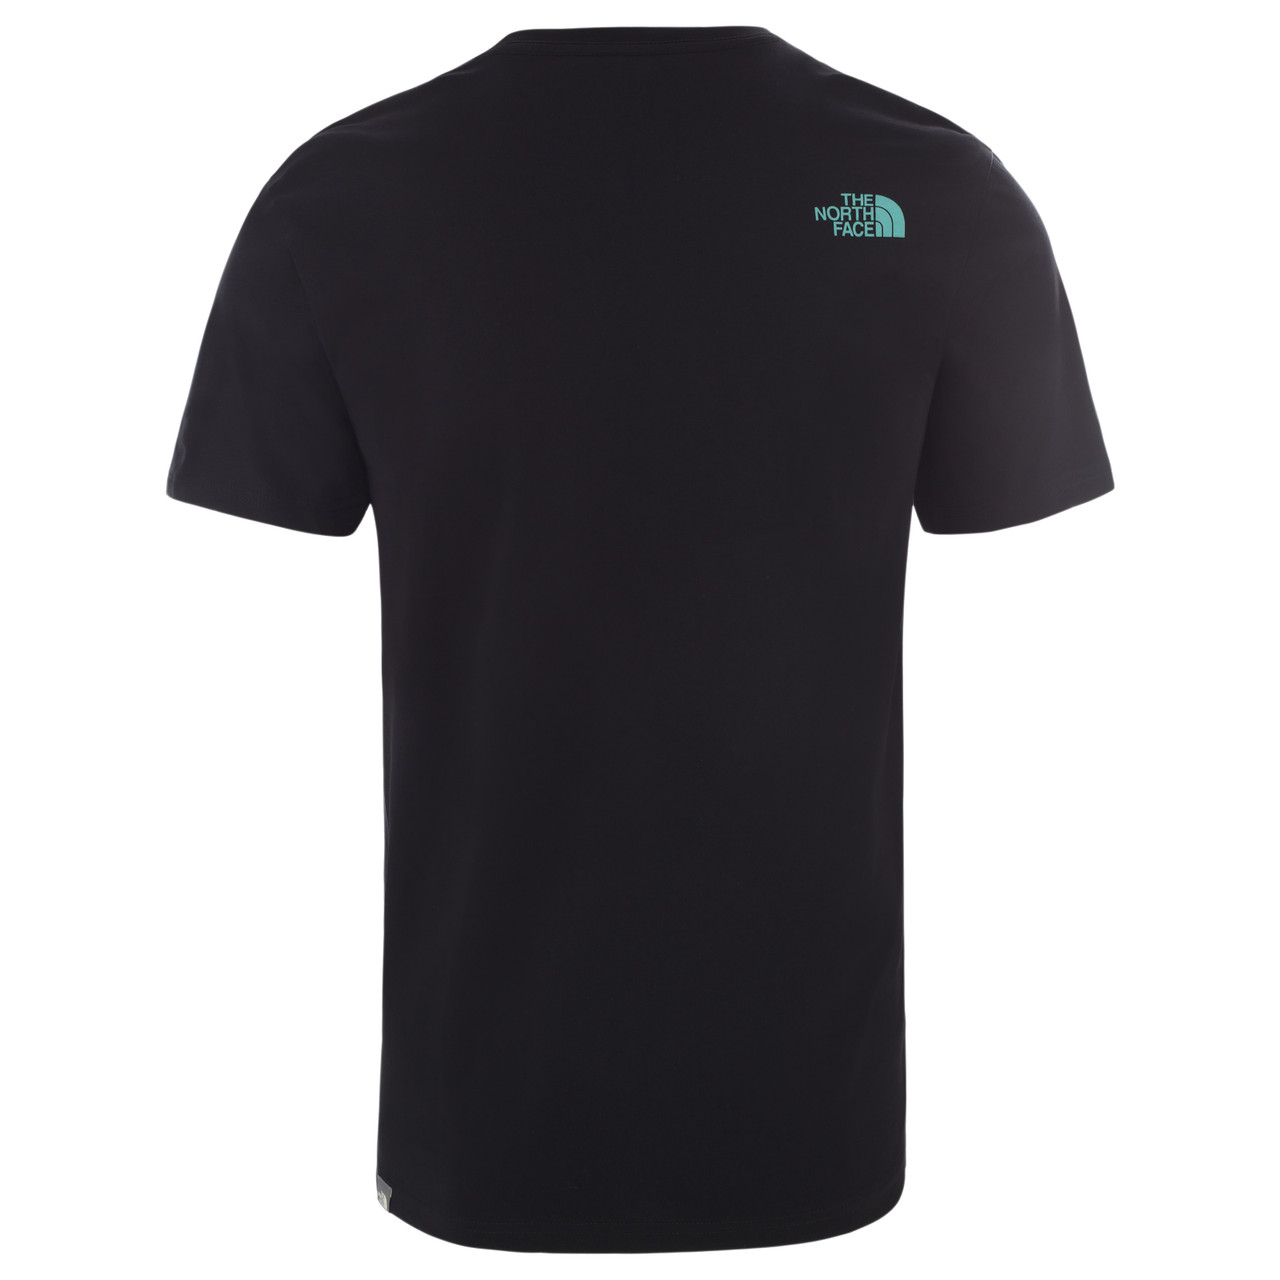 The North Face Rust Tee Men's S/S @ https://www.mountainmailorder.co.za/